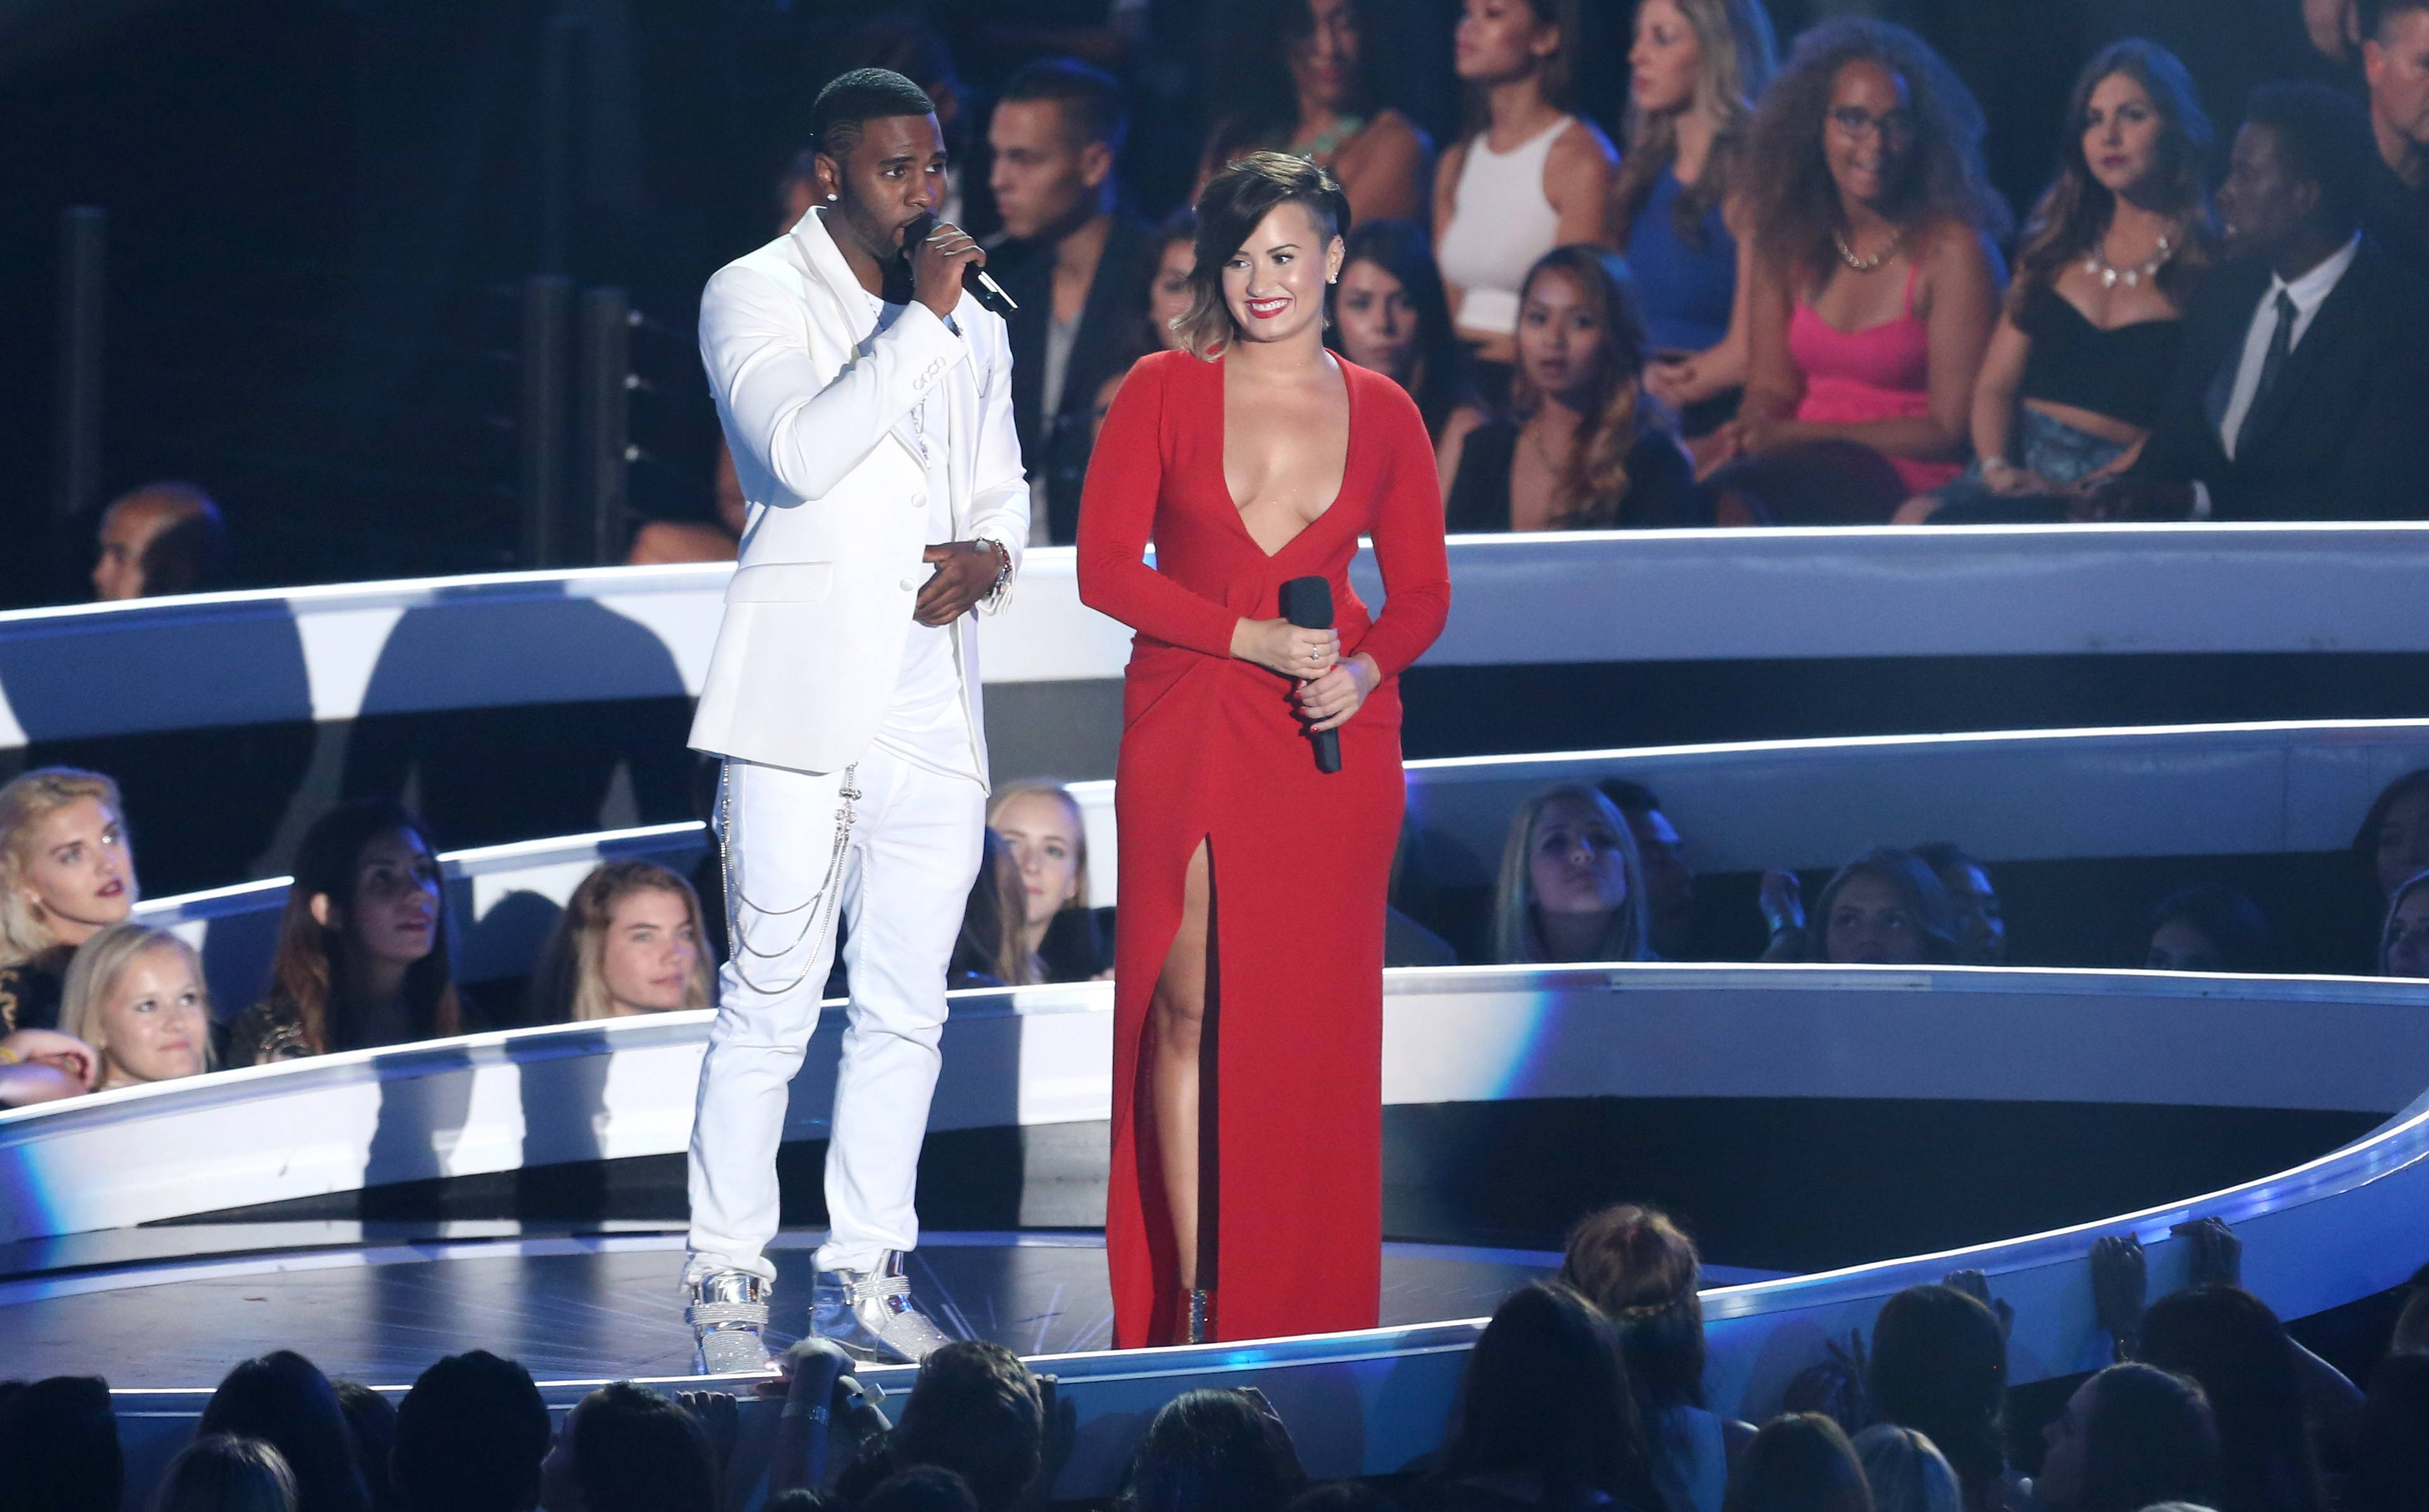 Jason Derulo, left, and Demi Lovato speak at the MTV Video Music Awards.